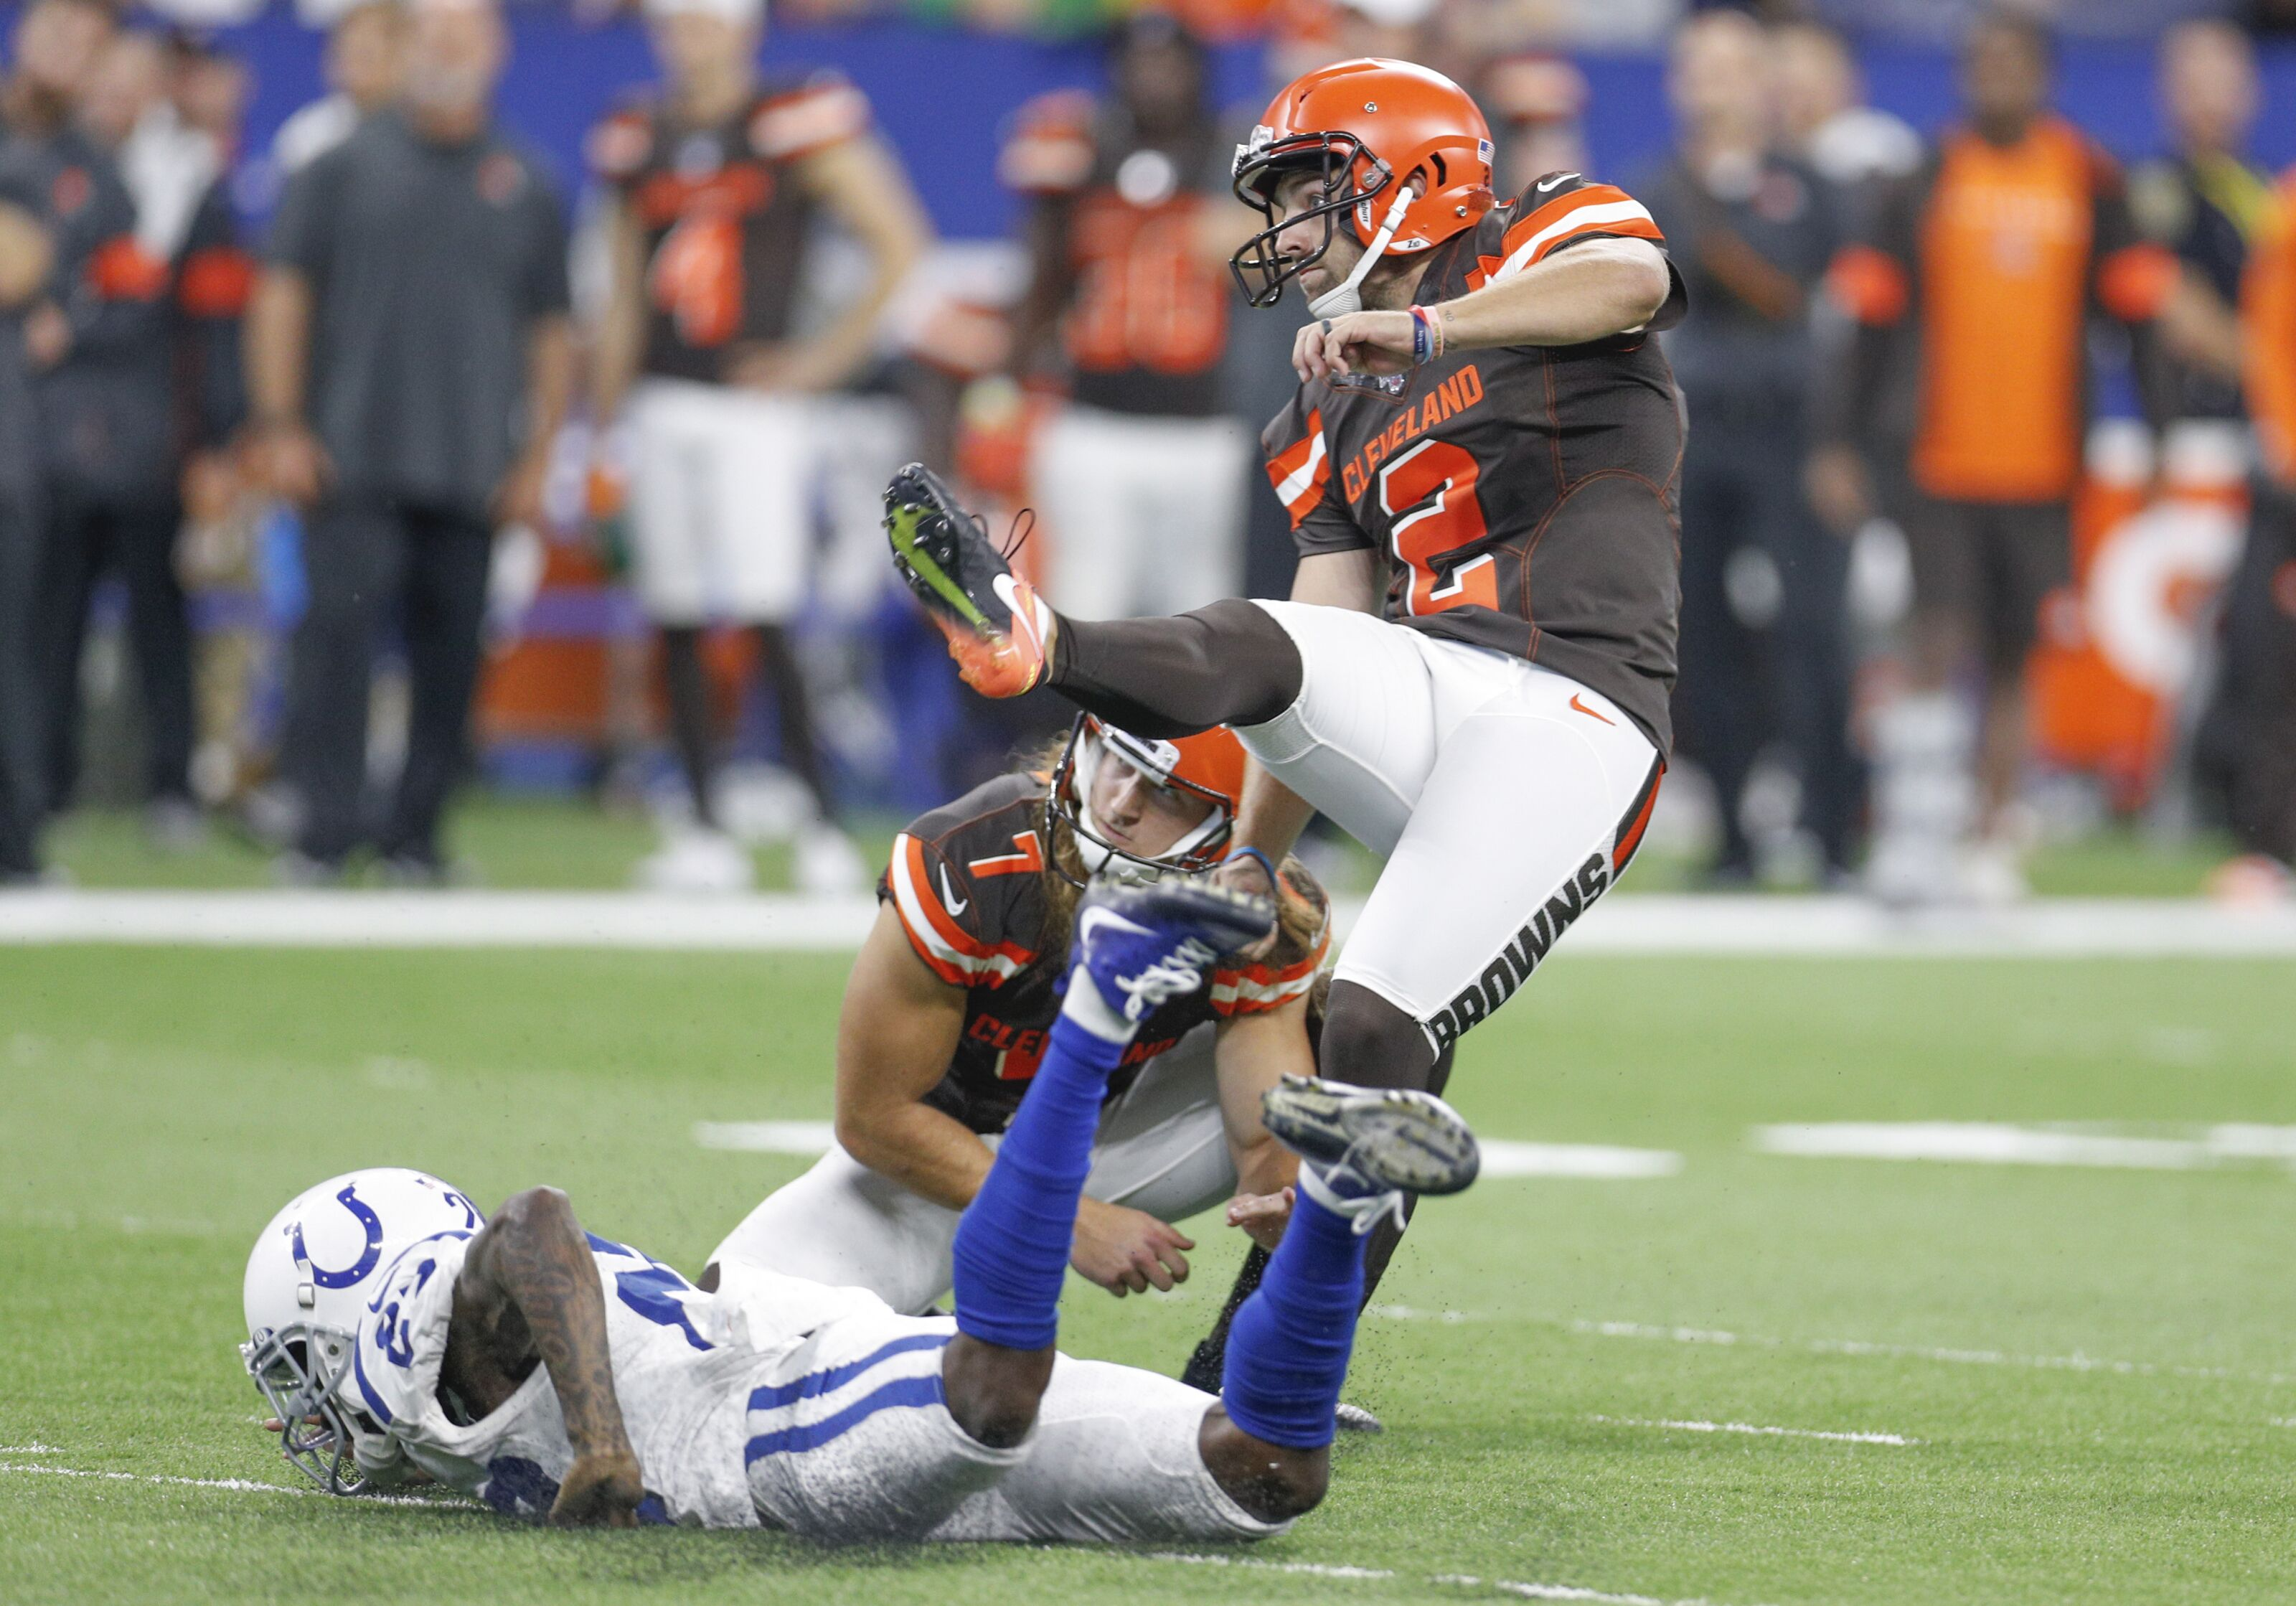 The Cleveland Browns areas of concern have become major issues